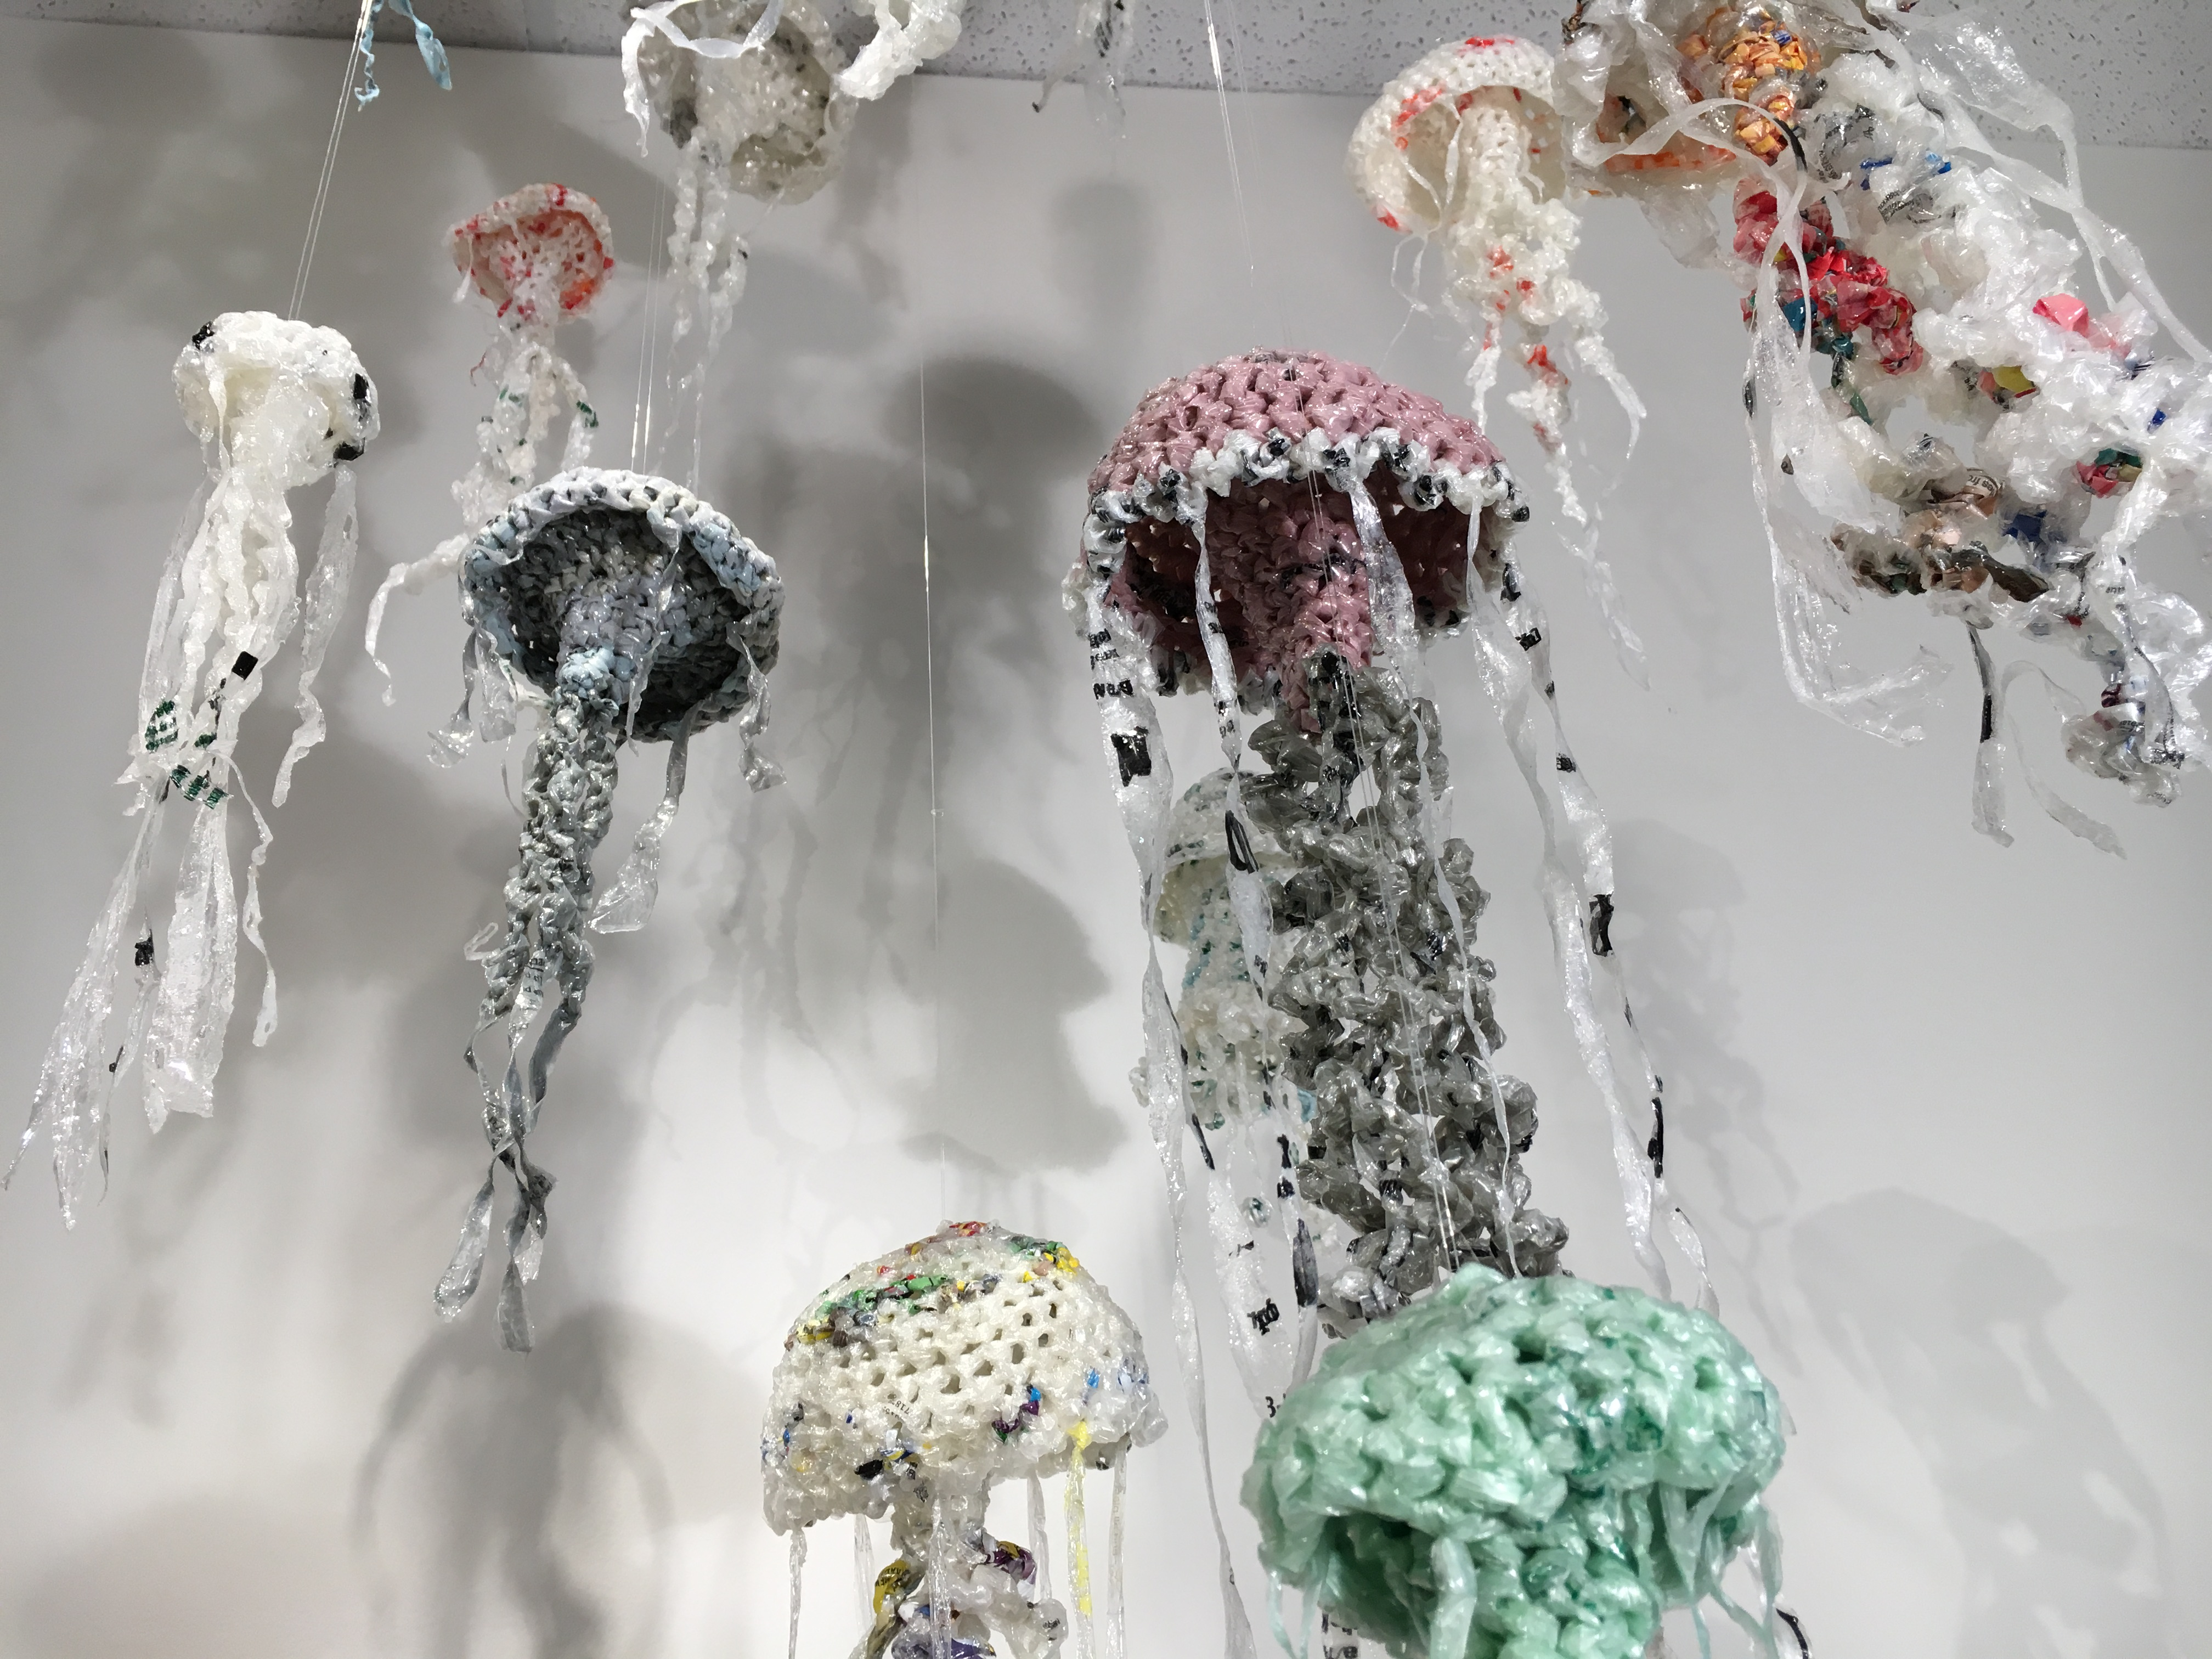 Jellyfish sculptures made of plastic hang from a ceiling